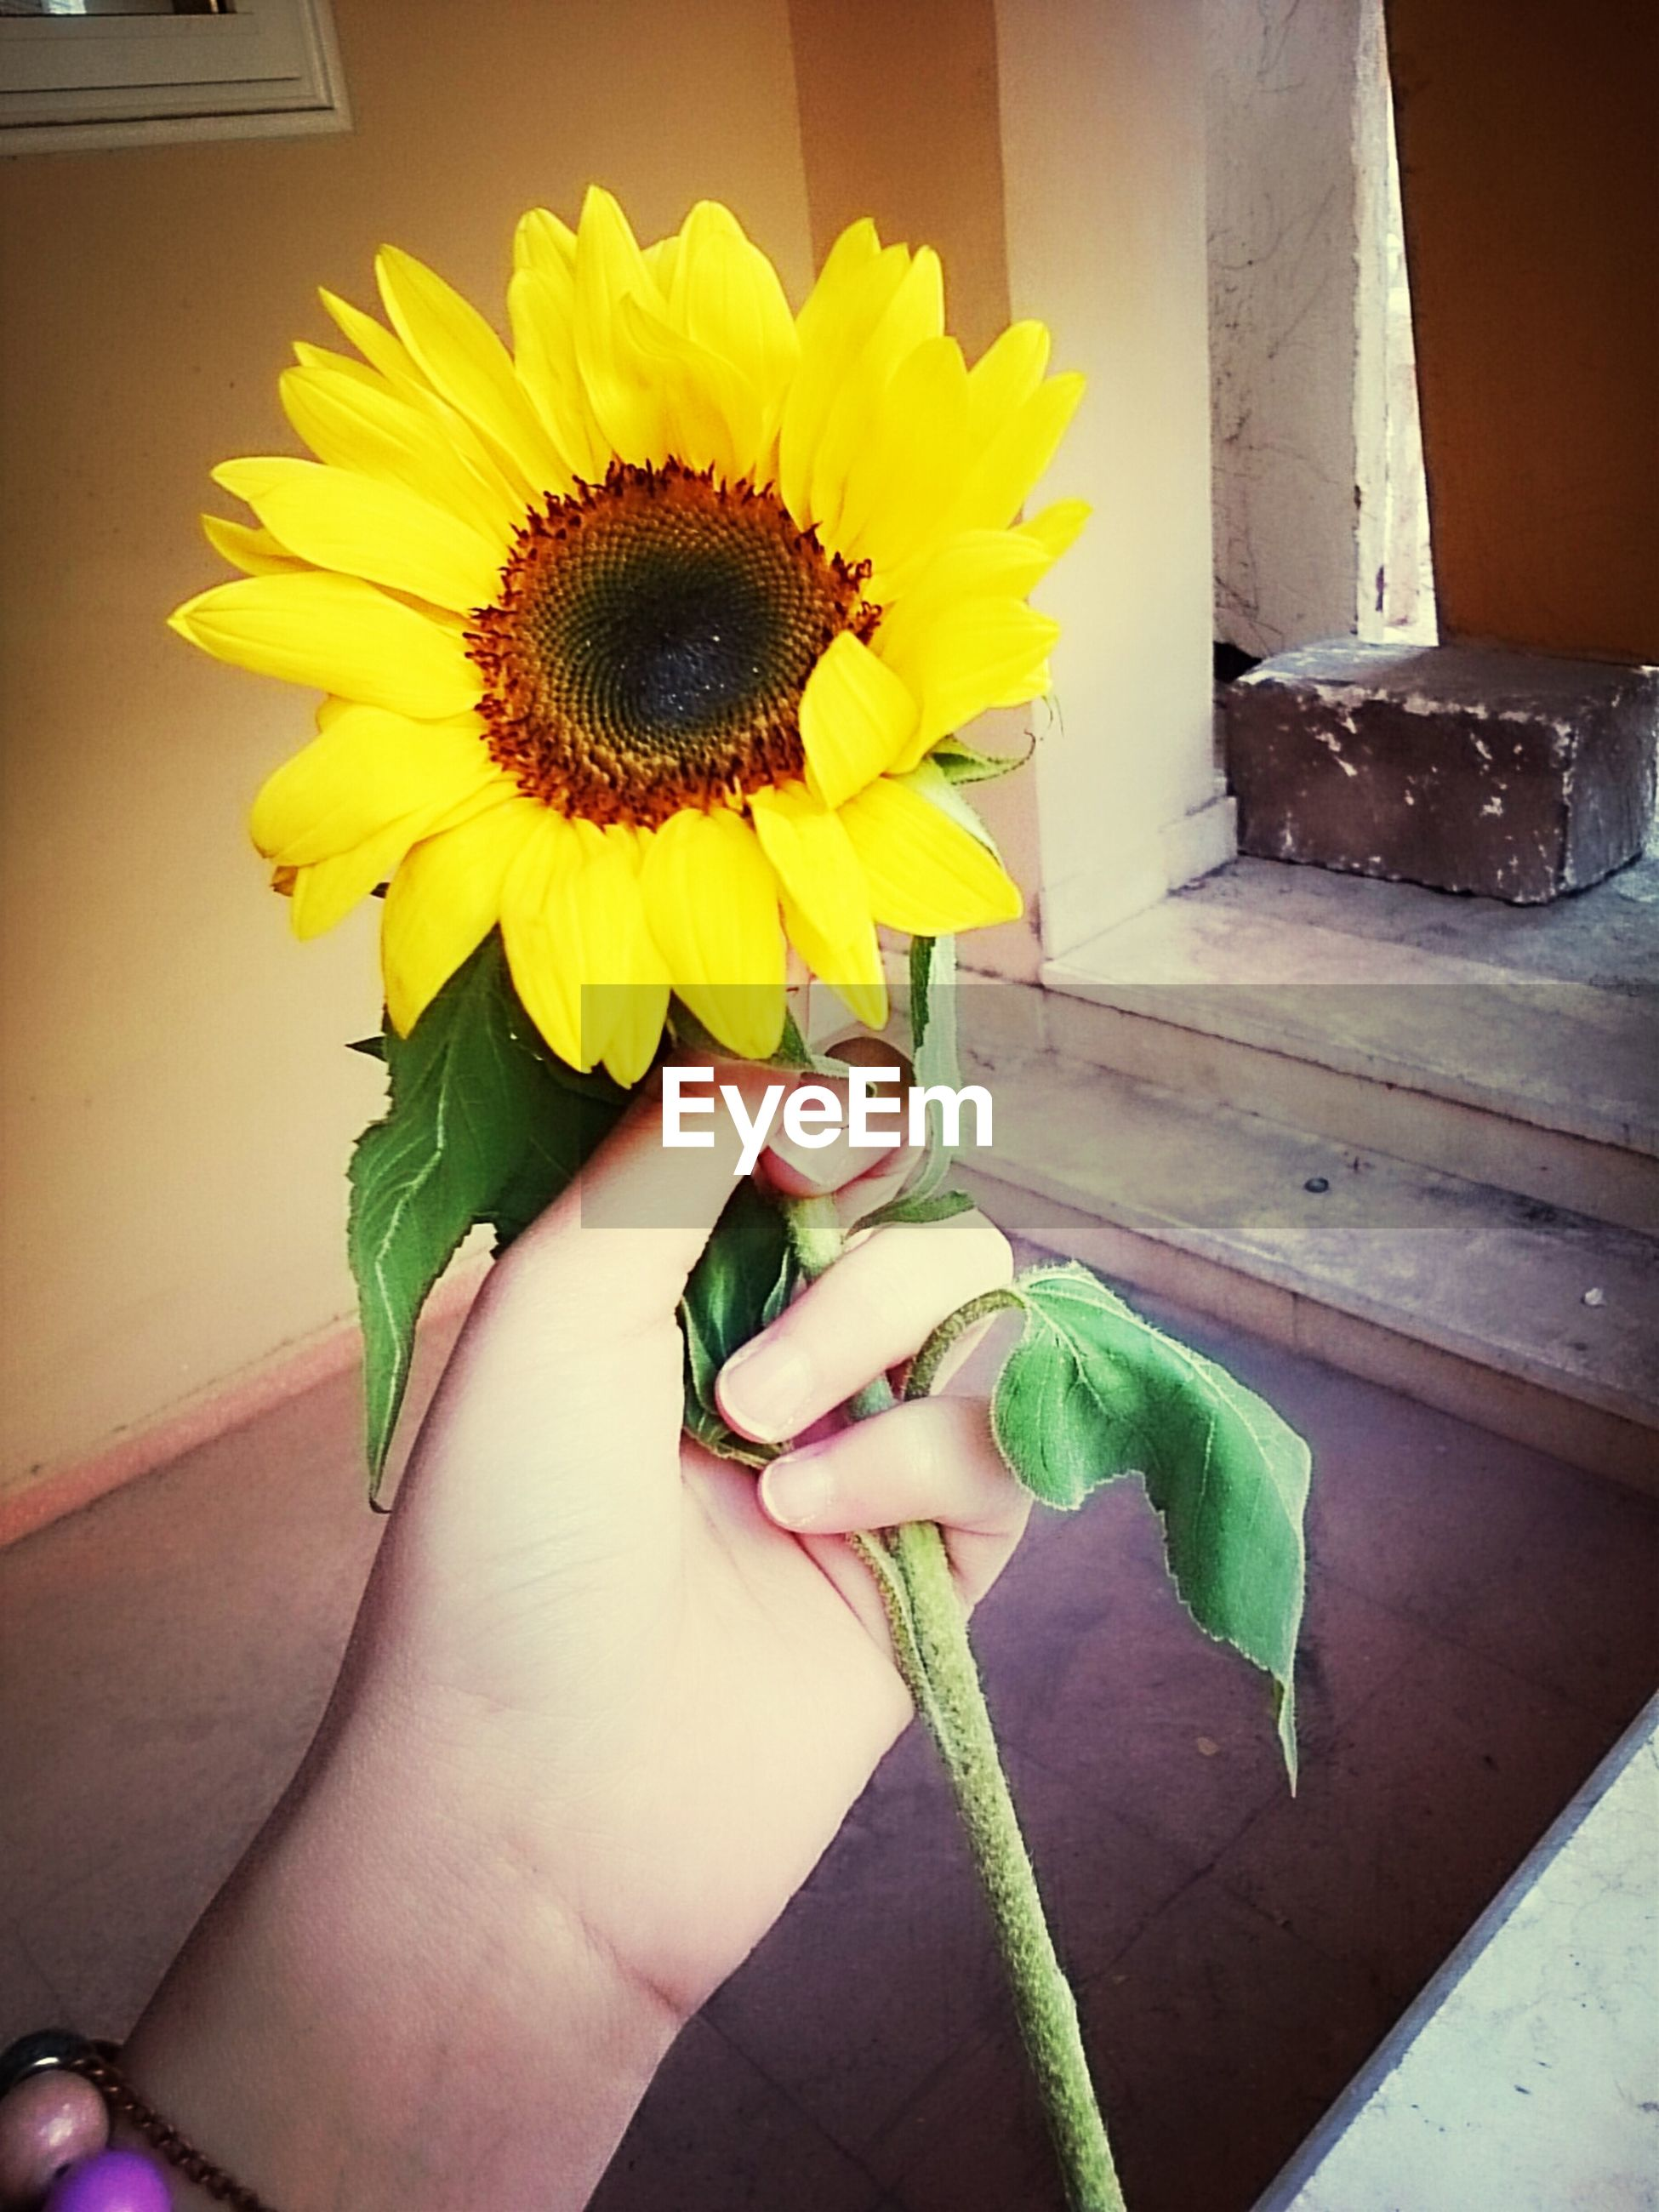 flower, yellow, person, holding, freshness, petal, flower head, fragility, part of, cropped, indoors, personal perspective, lifestyles, human finger, unrecognizable person, leaf